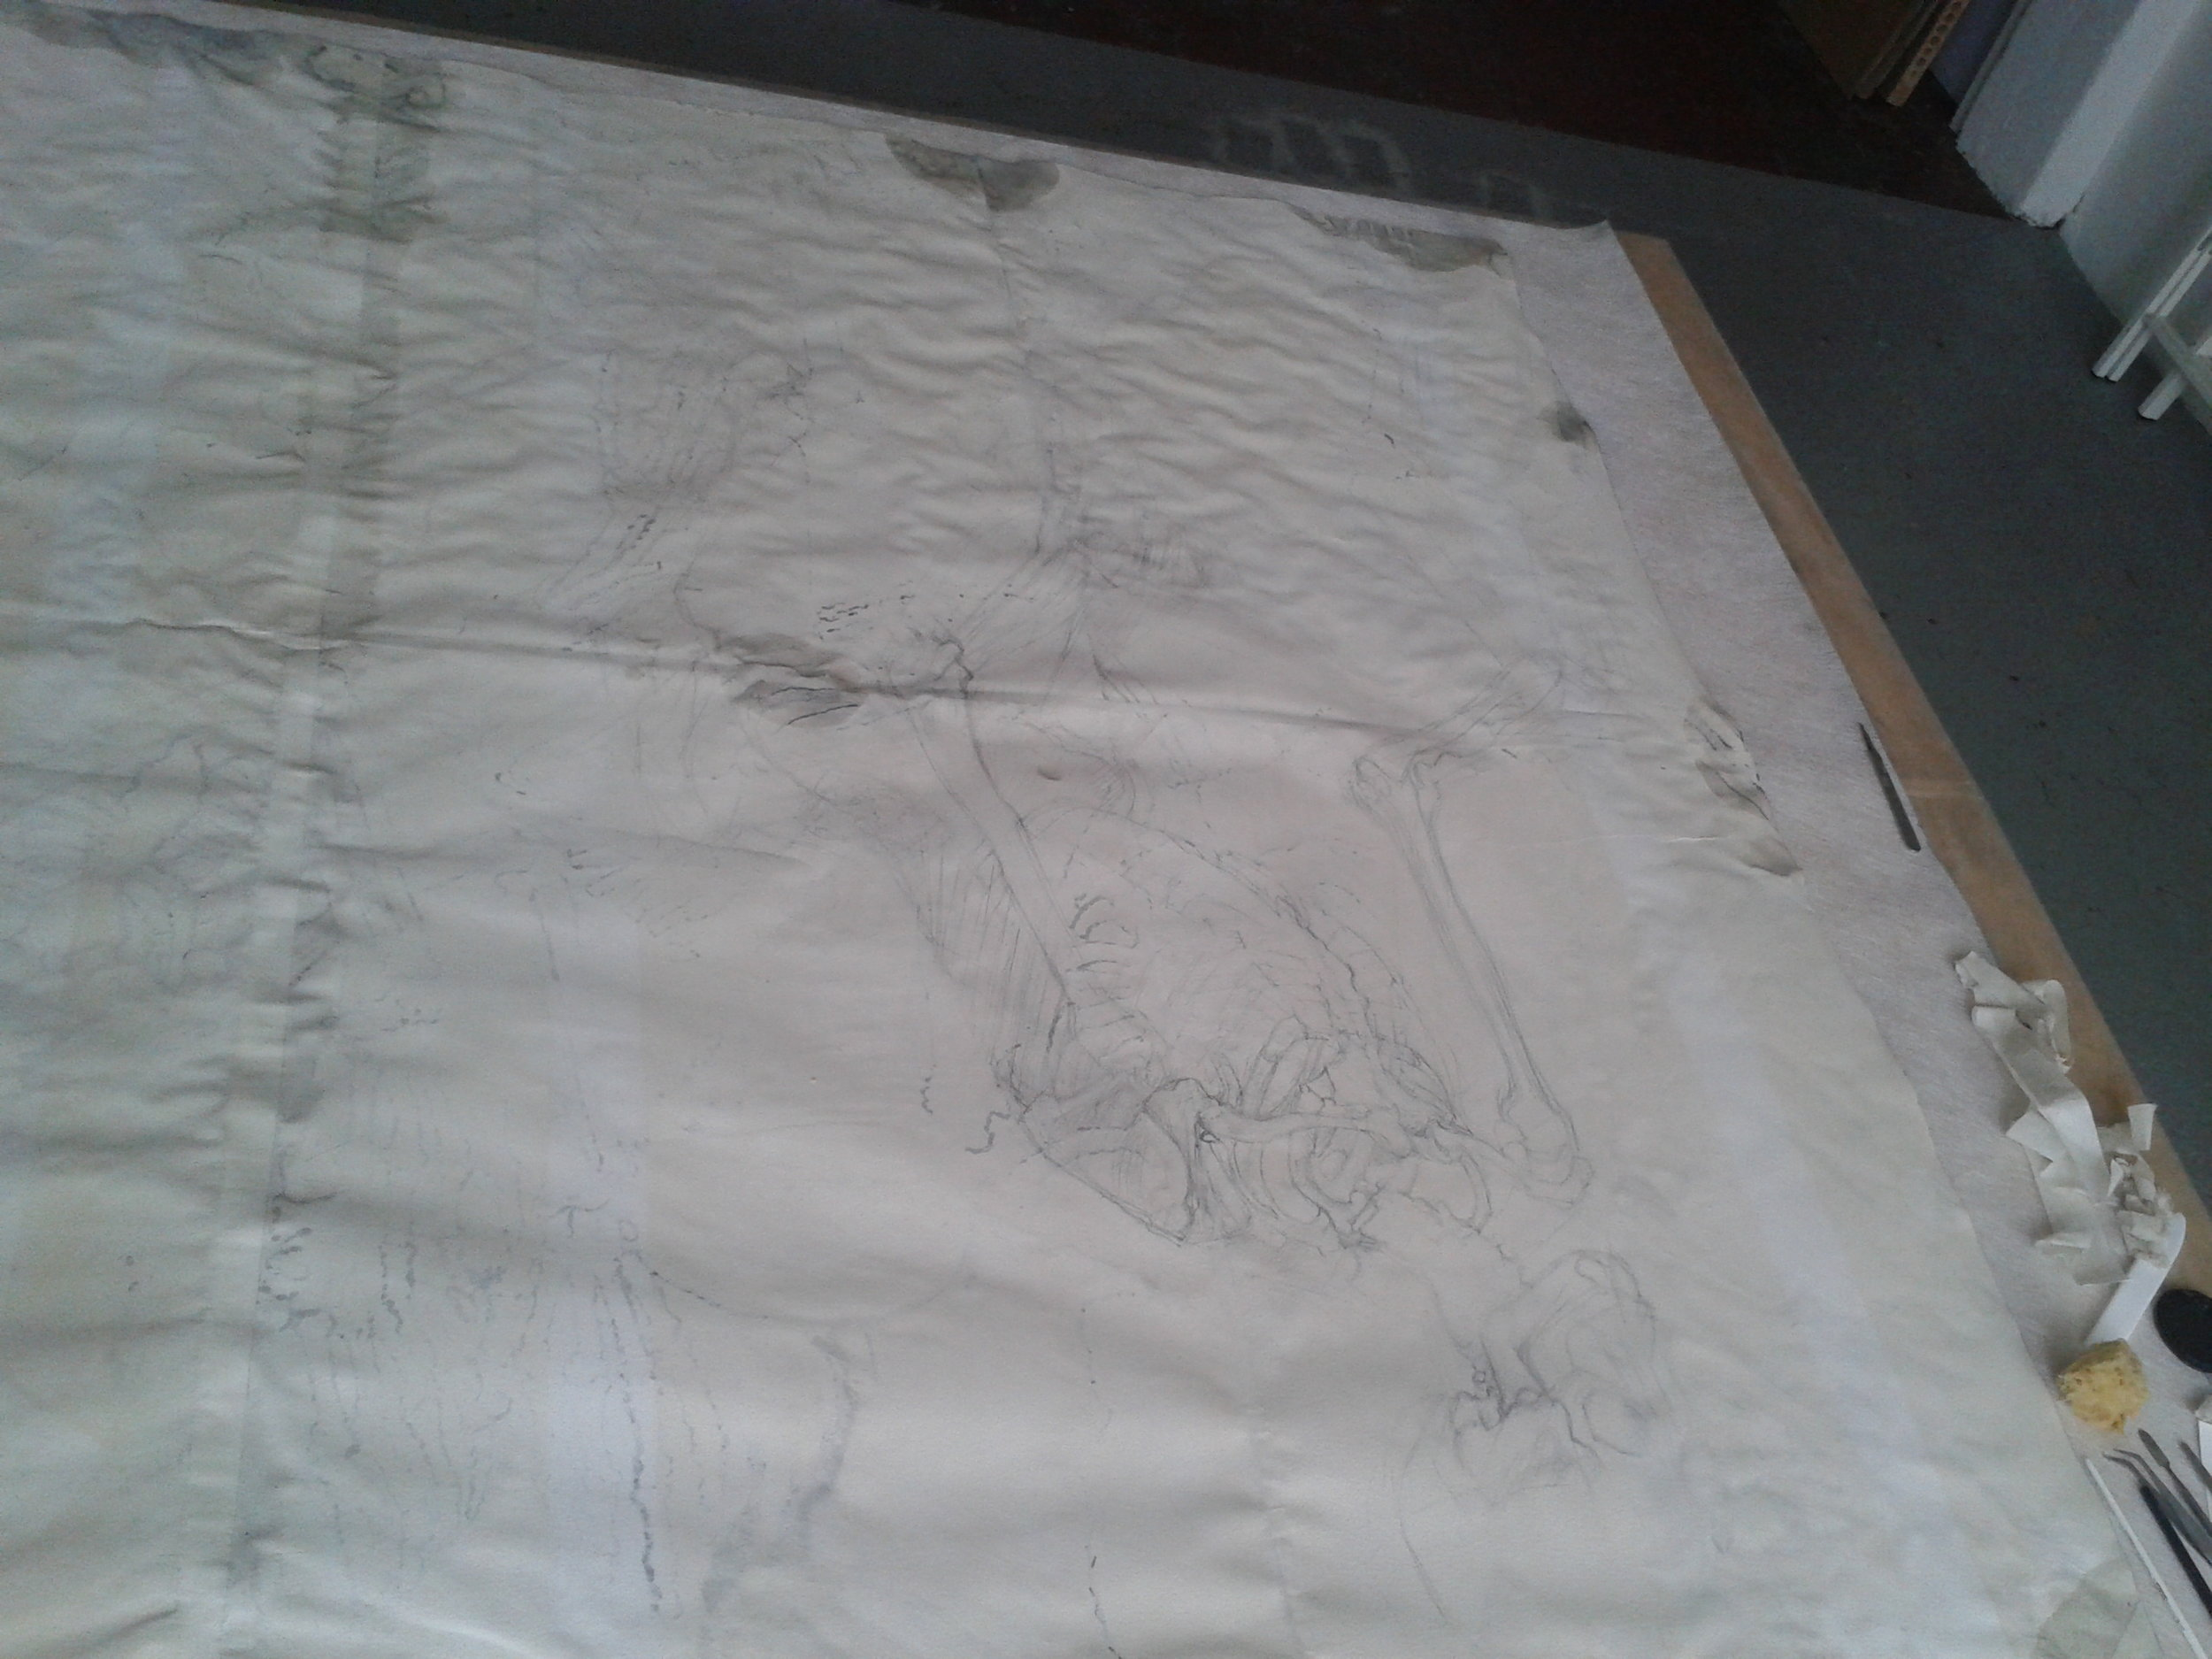 Verso of the drawing prior to humidification and flattening.